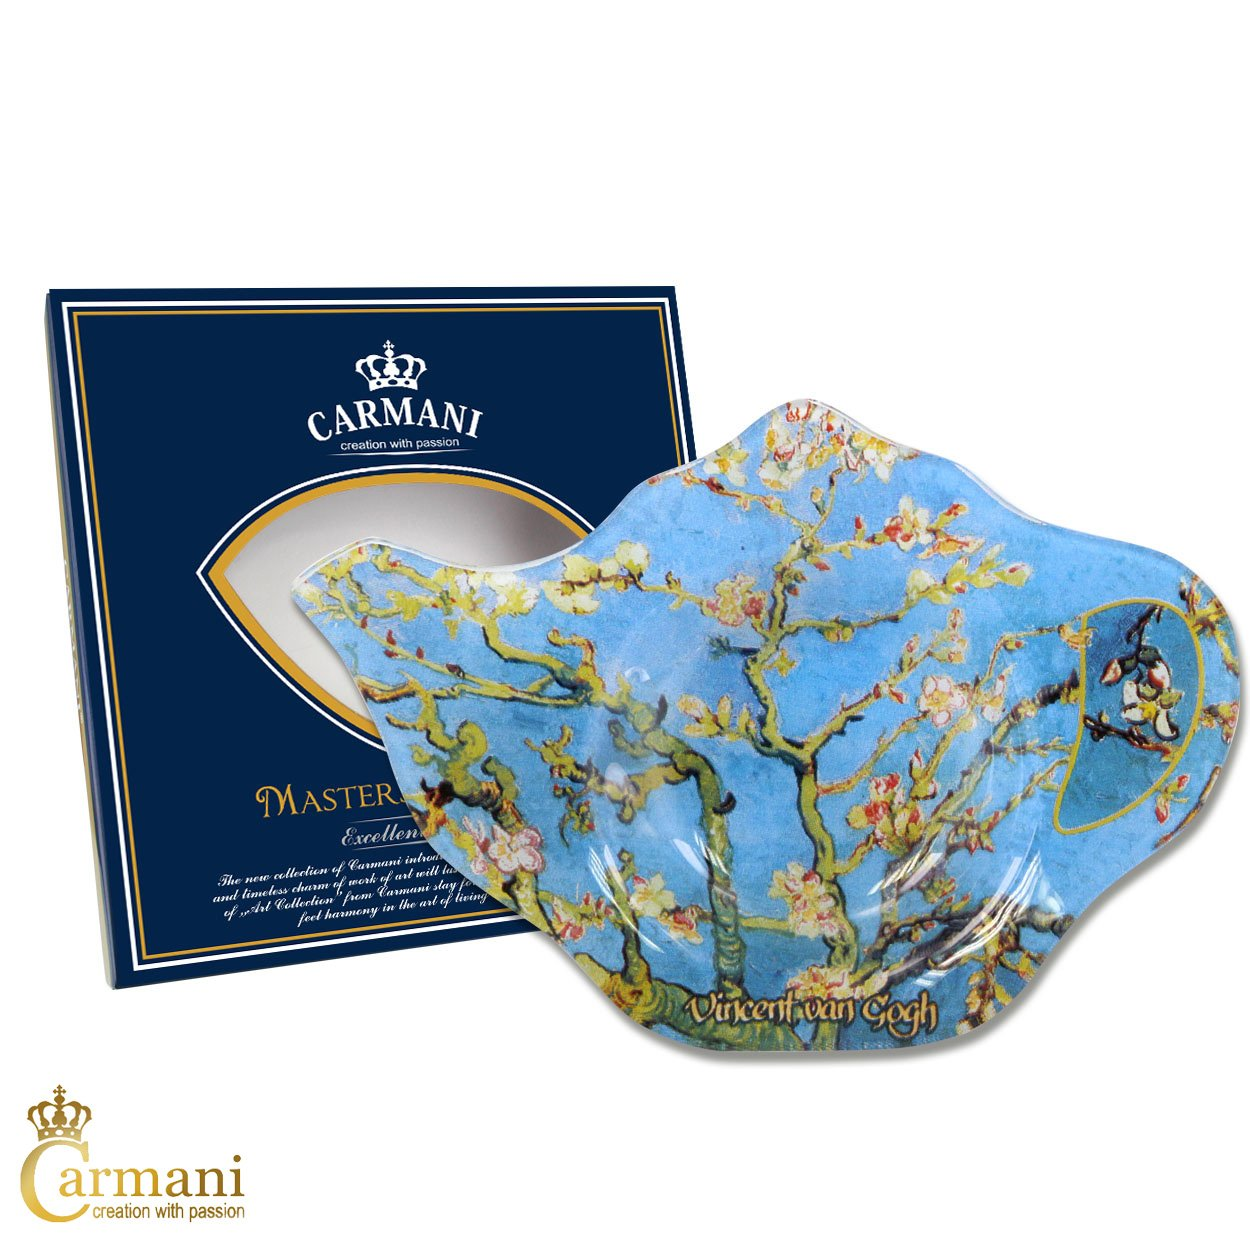 CARMANI - Elegant Glass Tea Bag Holder Dish in Teapot Shape with 'Almond Blossom' by Vincent Van Gogh